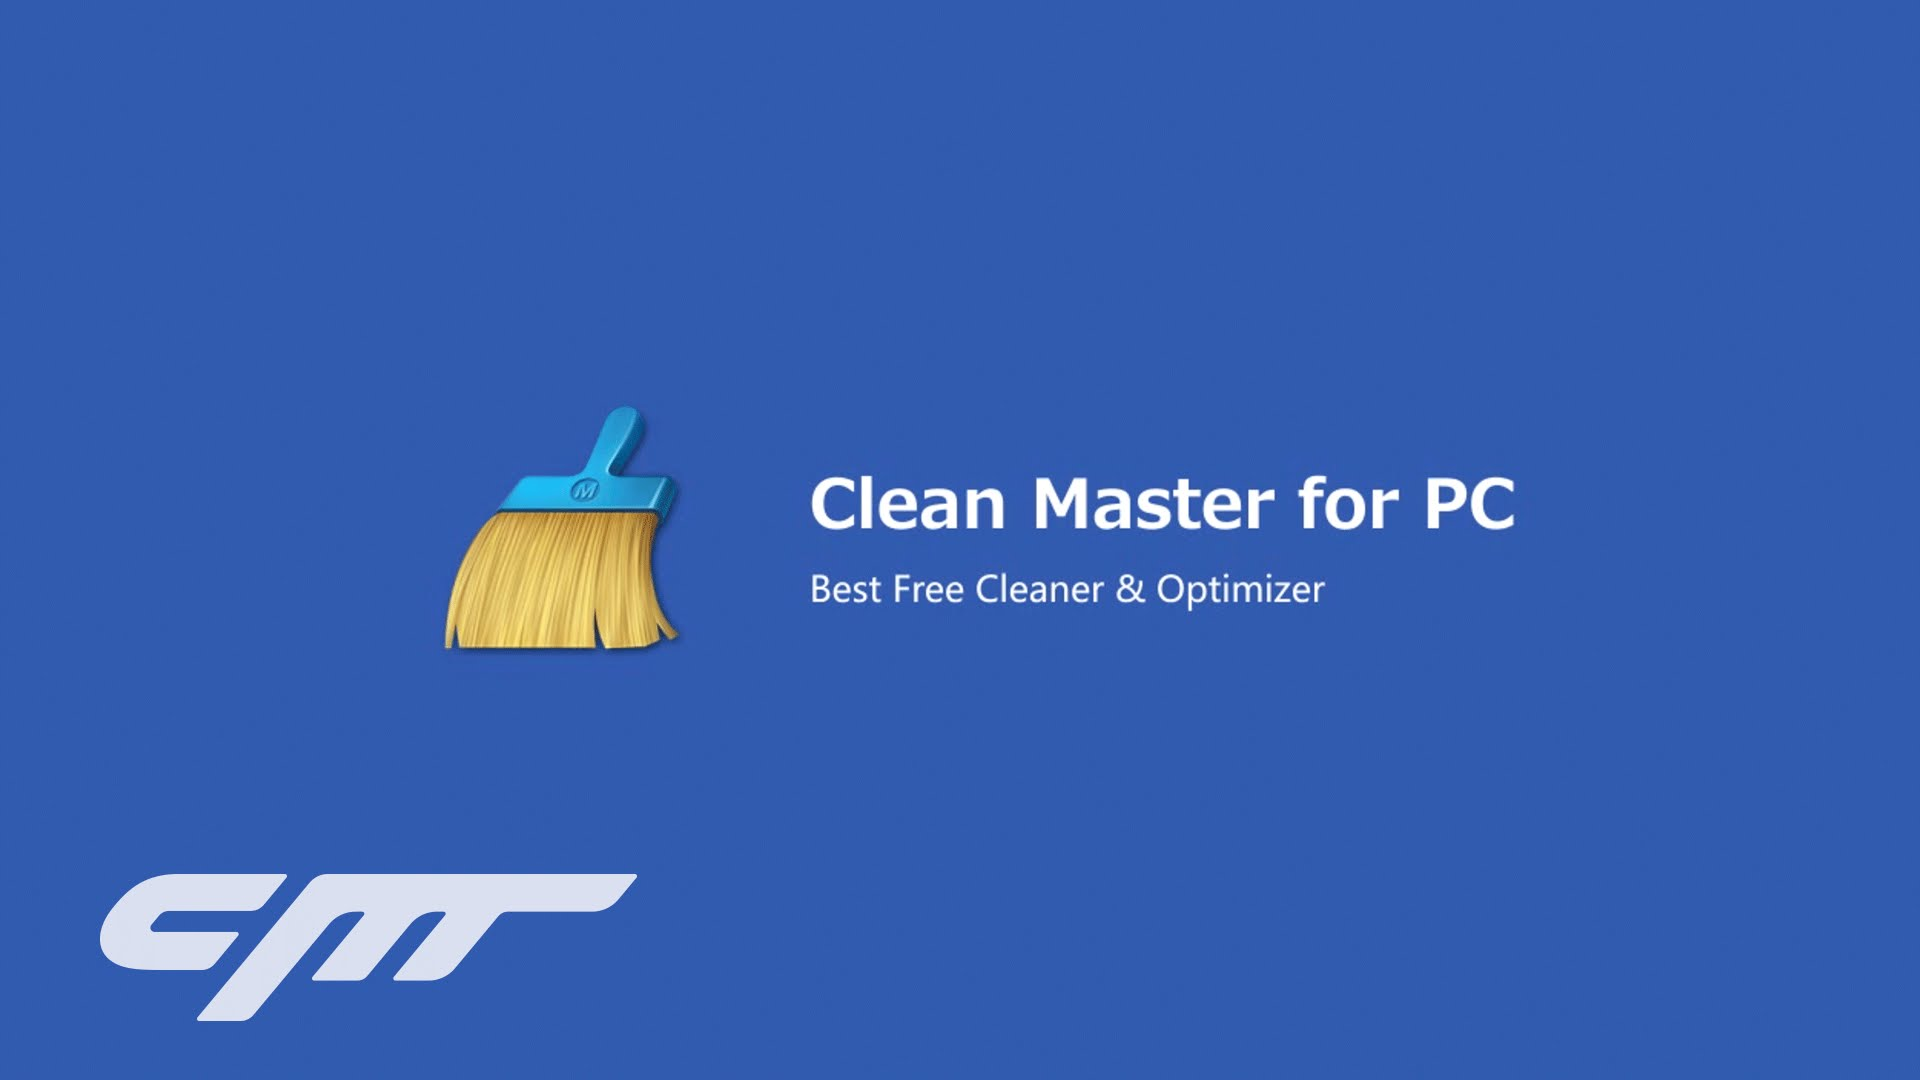 CLEAN MASTER FOR PC Reviews, CLEAN MASTER FOR PC Price, CLEAN MASTER